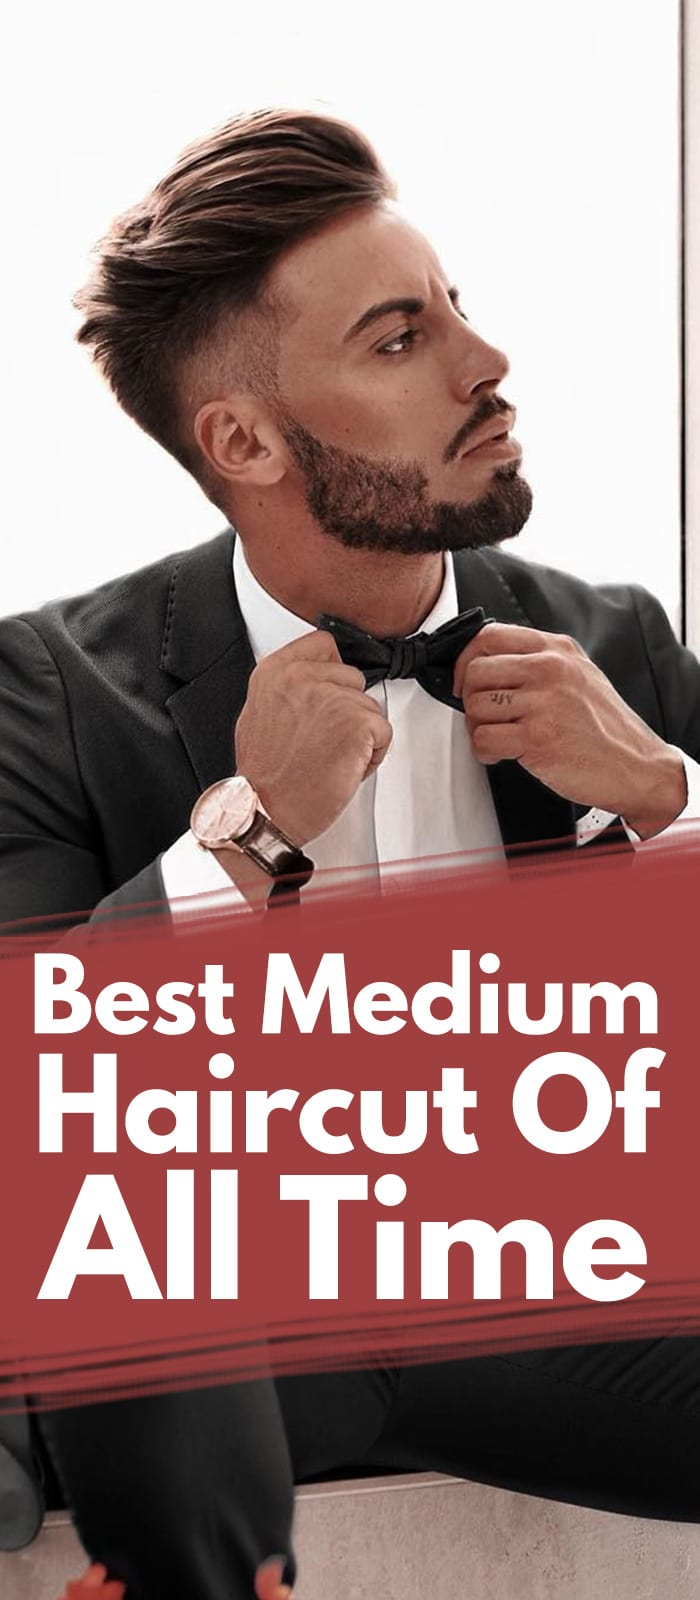 13 Smart Medium Haircuts For Men In 2019.